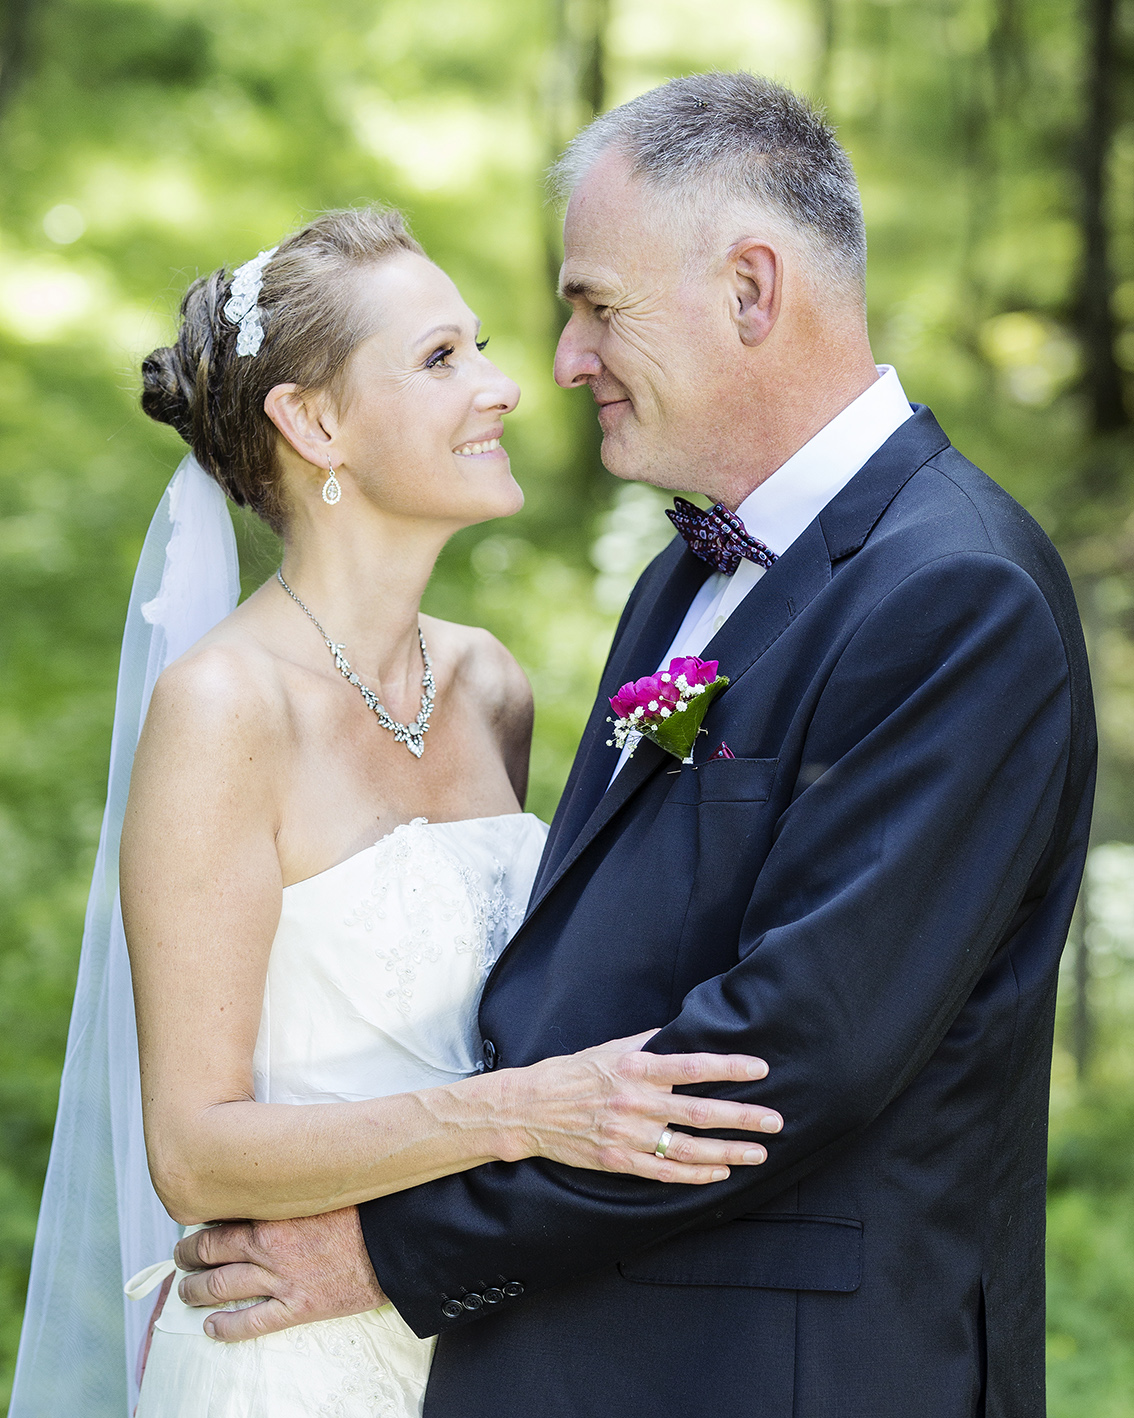 Marianne & Endre